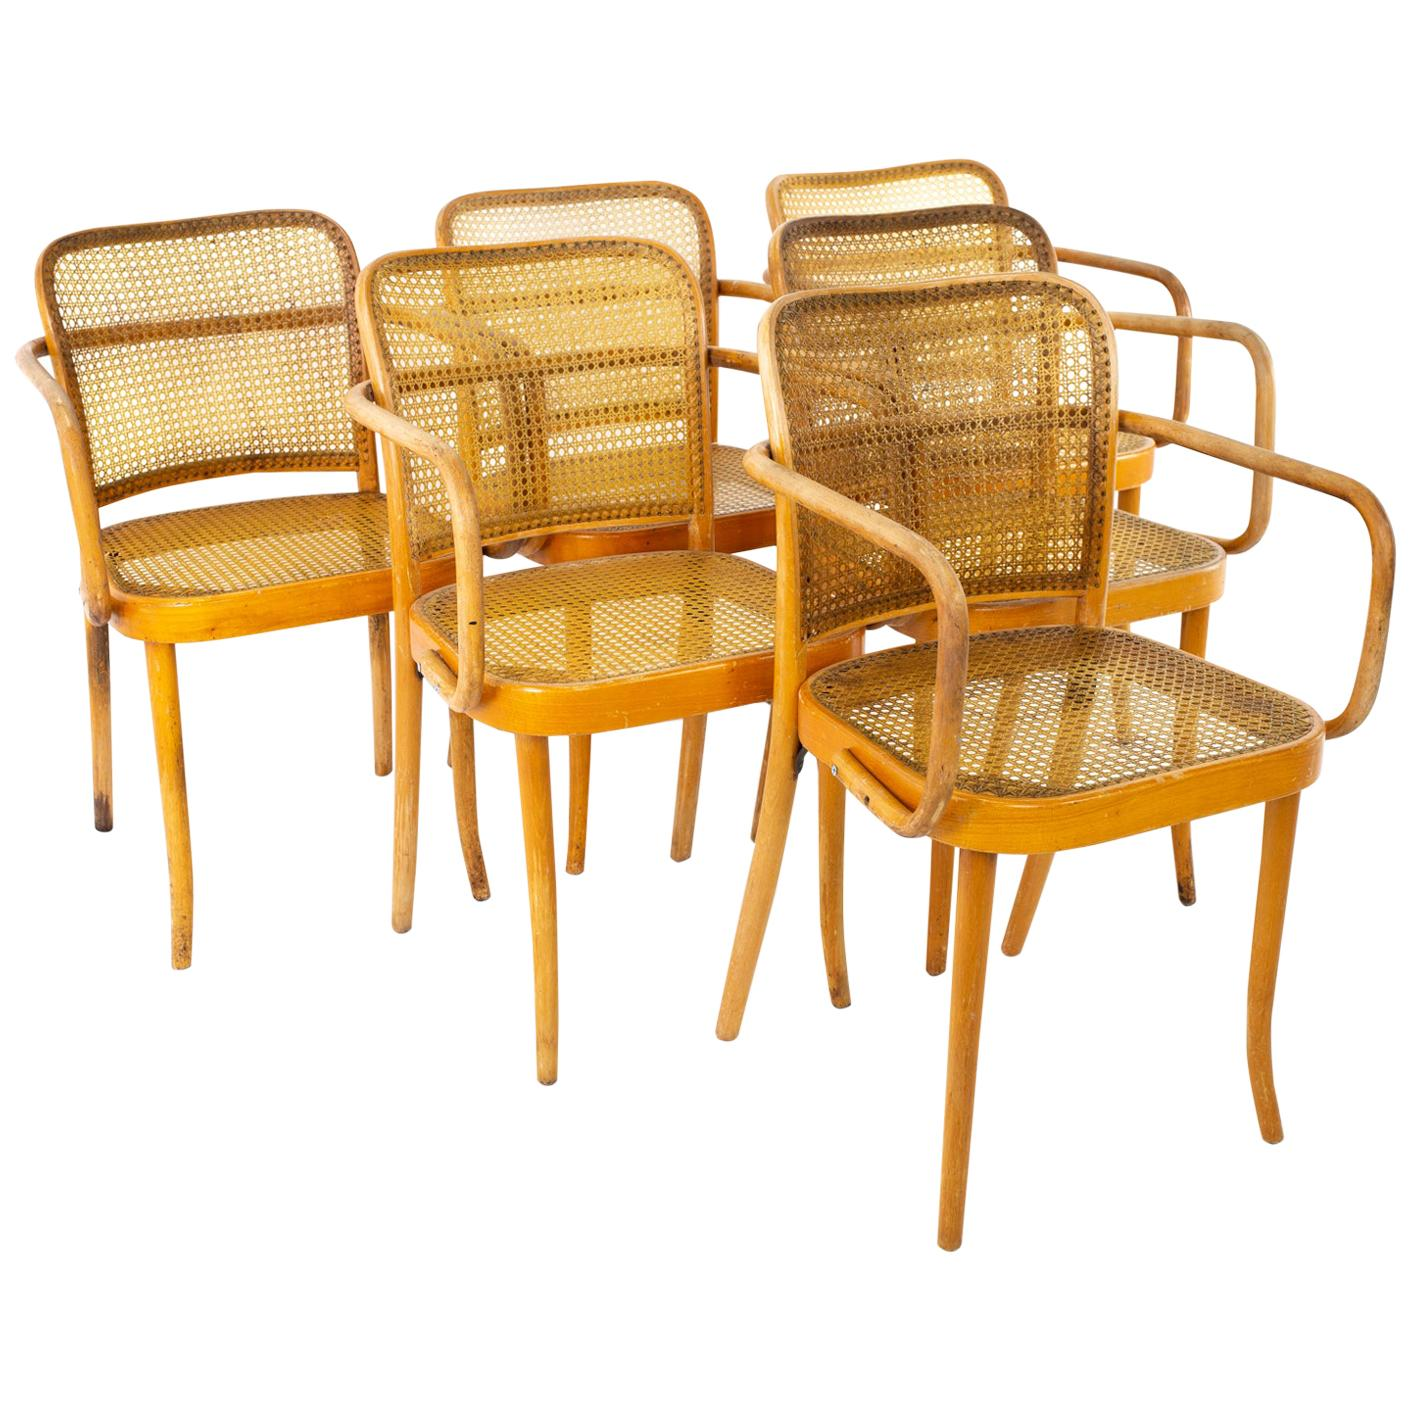 Salvatore Leone Thonet Style Mid Century Bentwood & Cane Dining Chairs, Set of 6